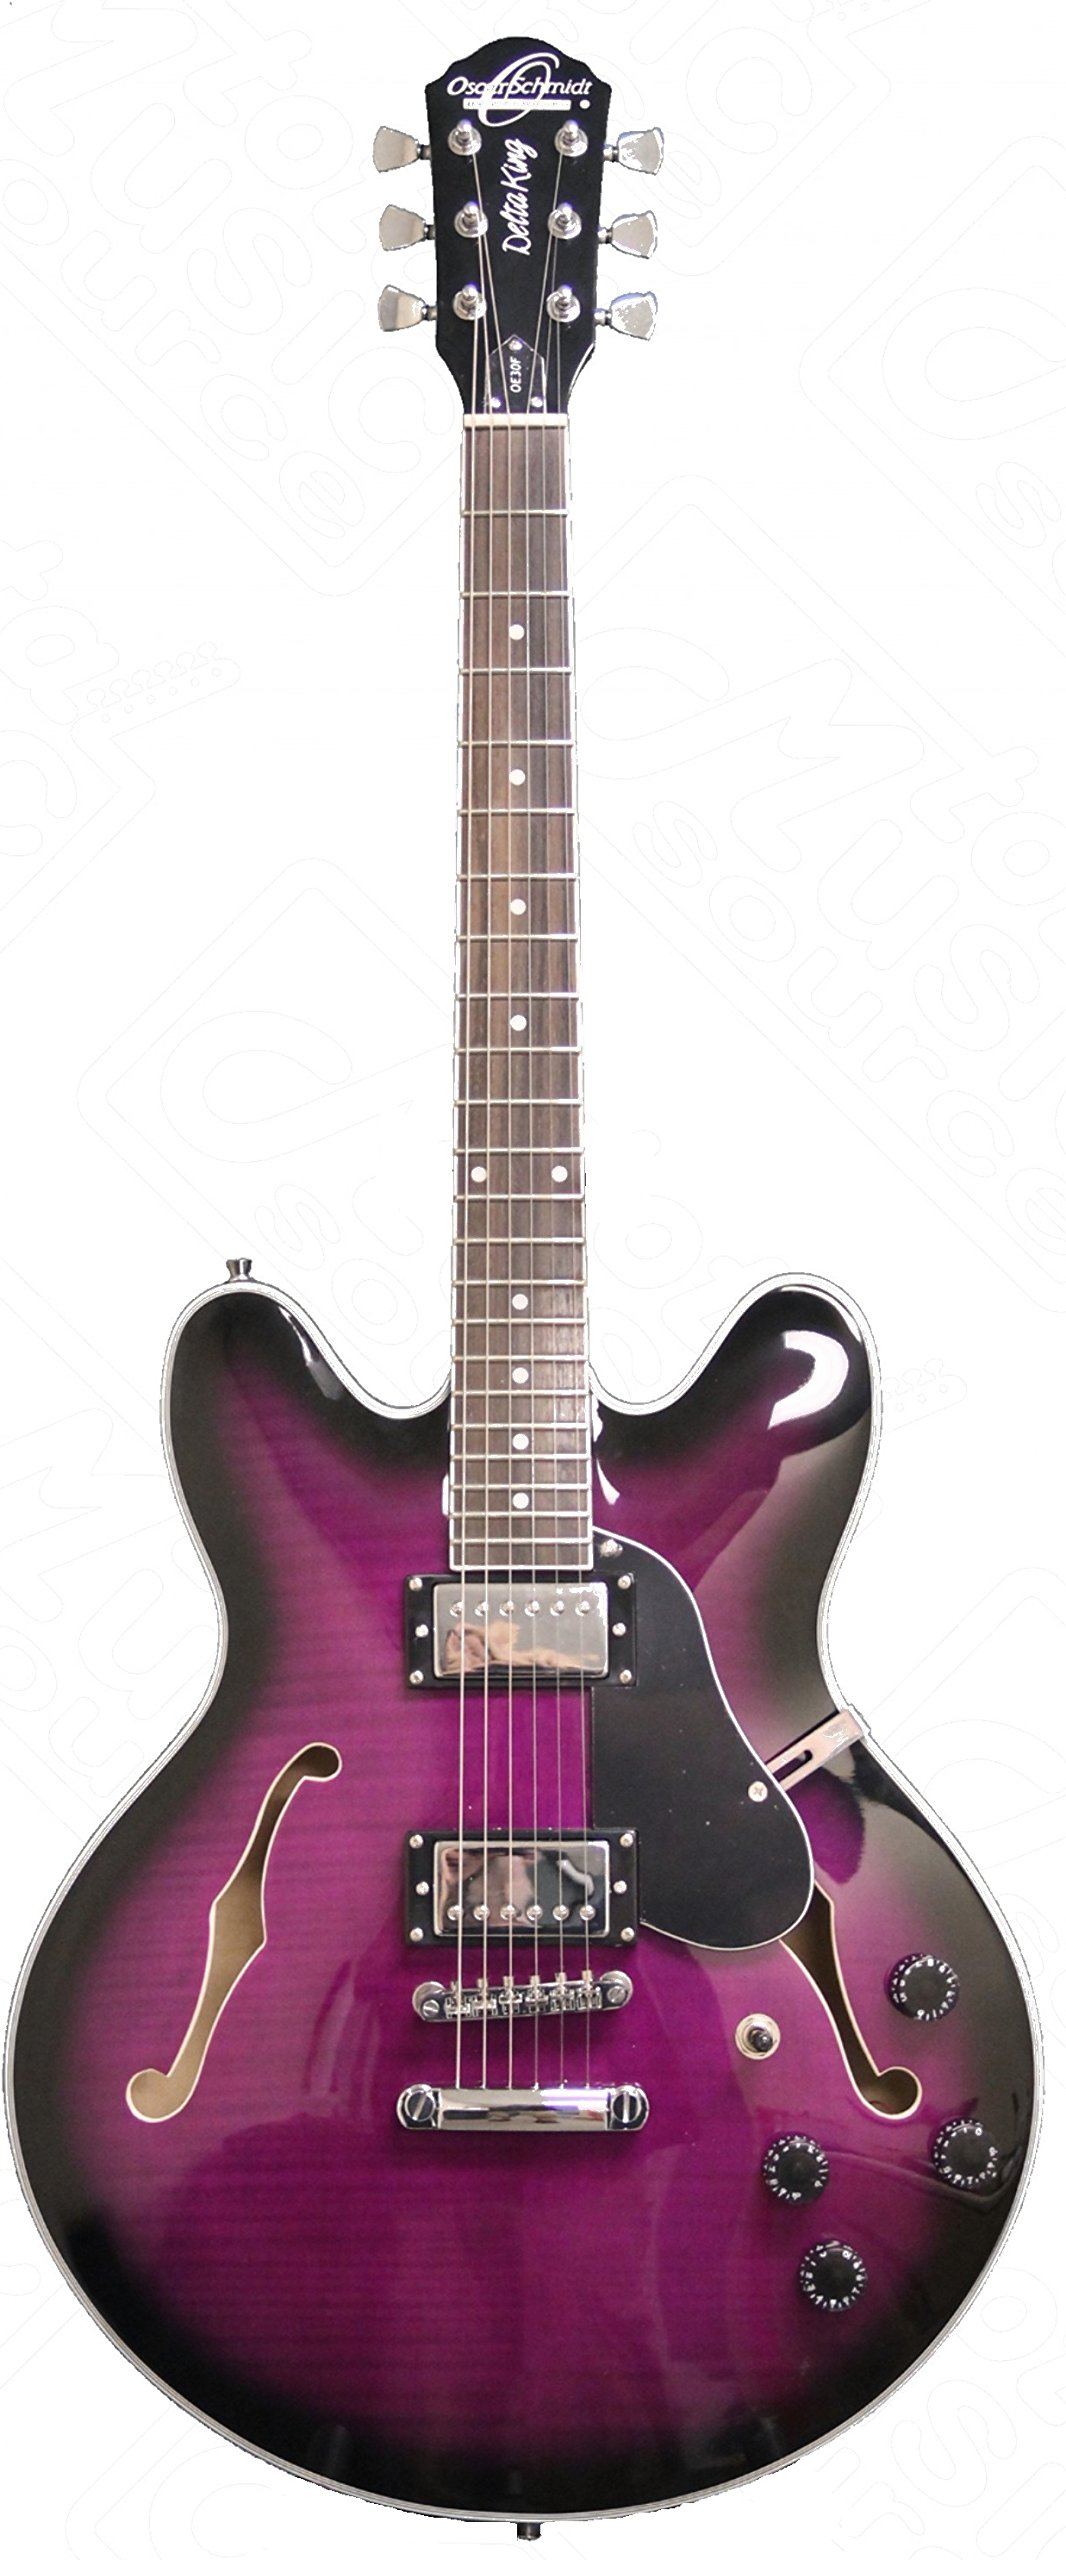 OE30 Purple Burst Oscar Schmidt Semi-Hollow Body Electric Guitar by Washburn, Ebony, Grover Tuners by Oscar Schmidt